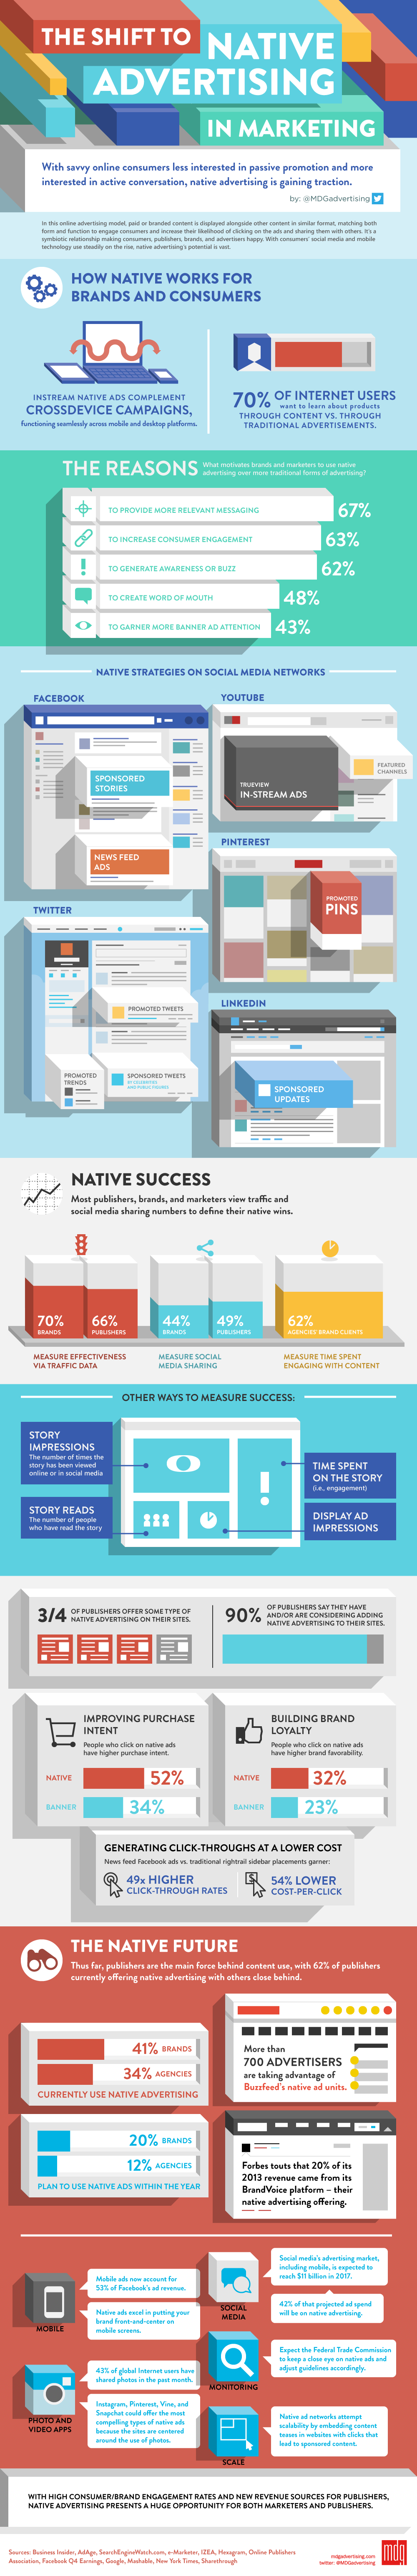 Native Advertising Online for Businesses